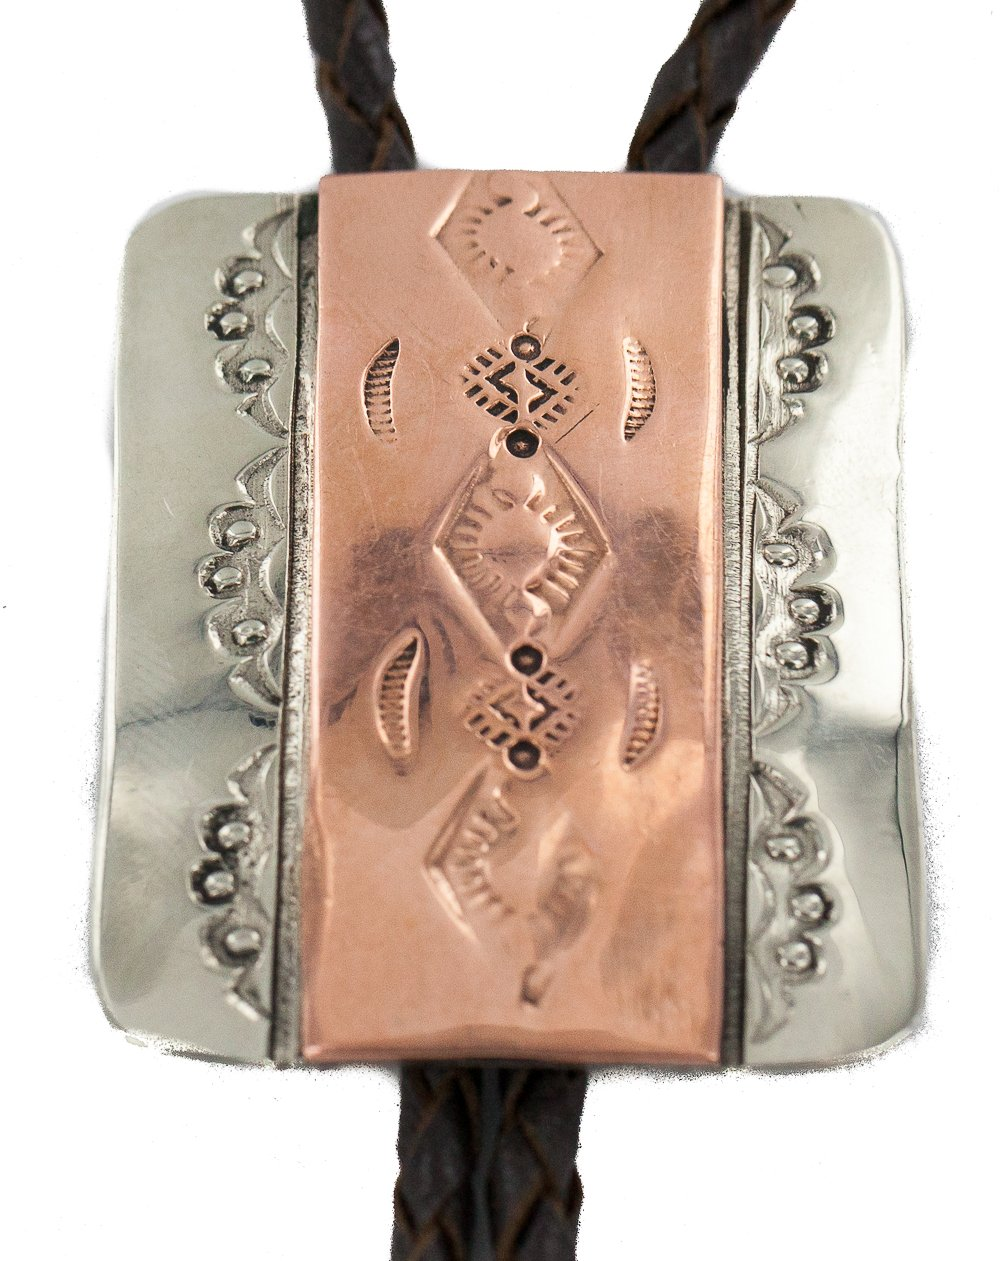 Certified Authentic Handmade Navajo Leather Pure Copper and Nickel Native American Bolo Tie 244891